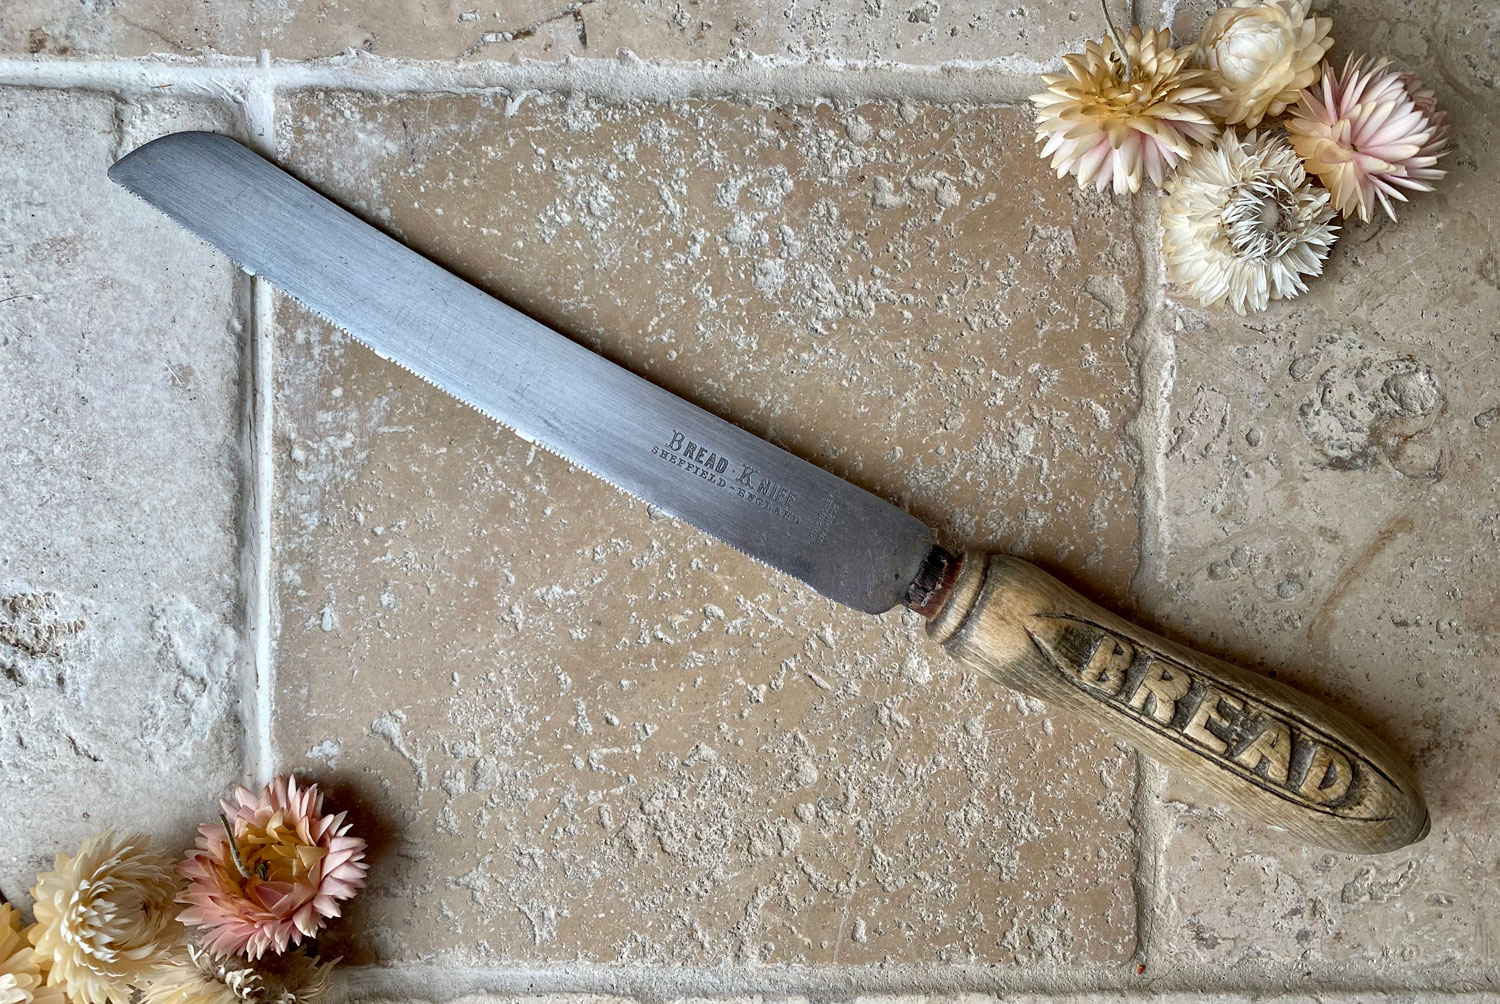 antique early 20th century carved english treen wooden bread knife stainless steel blade